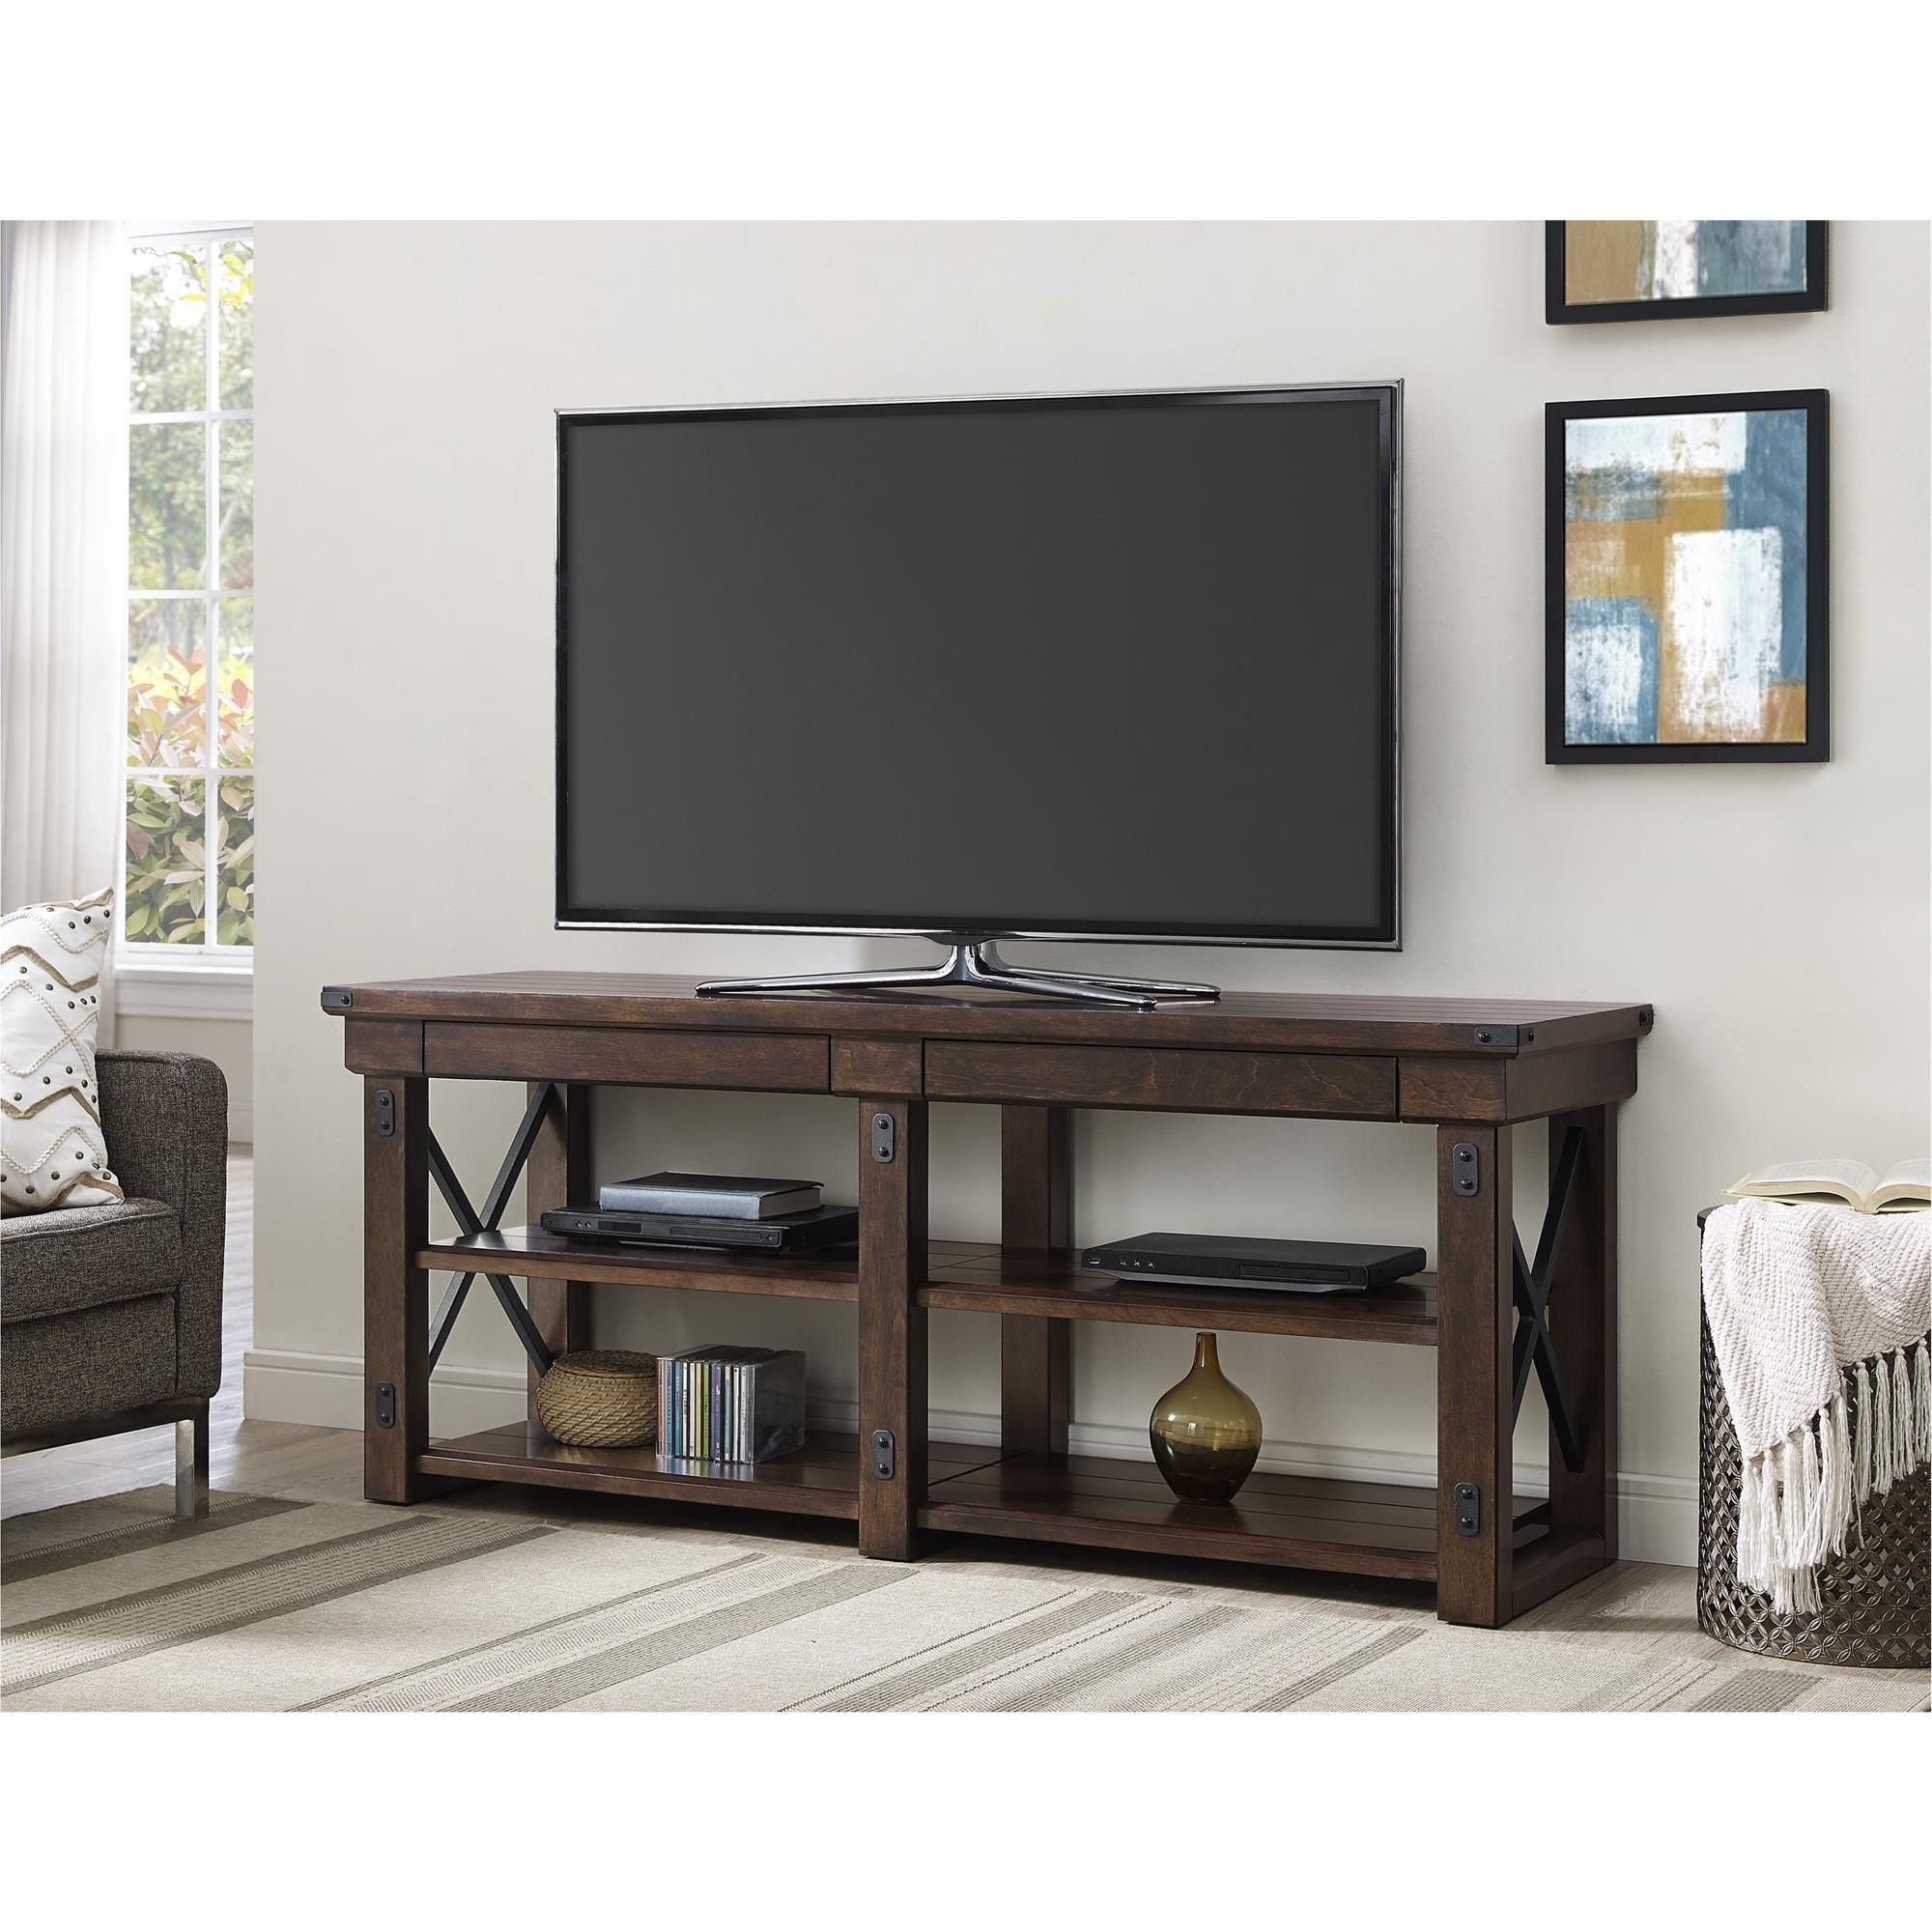 Ameriwood Home Wildwood Mahogany Veneer 65 Inch Tv Stand (65 Inch Tv Pertaining To Casey Grey 66 Inch Tv Stands (View 1 of 20)